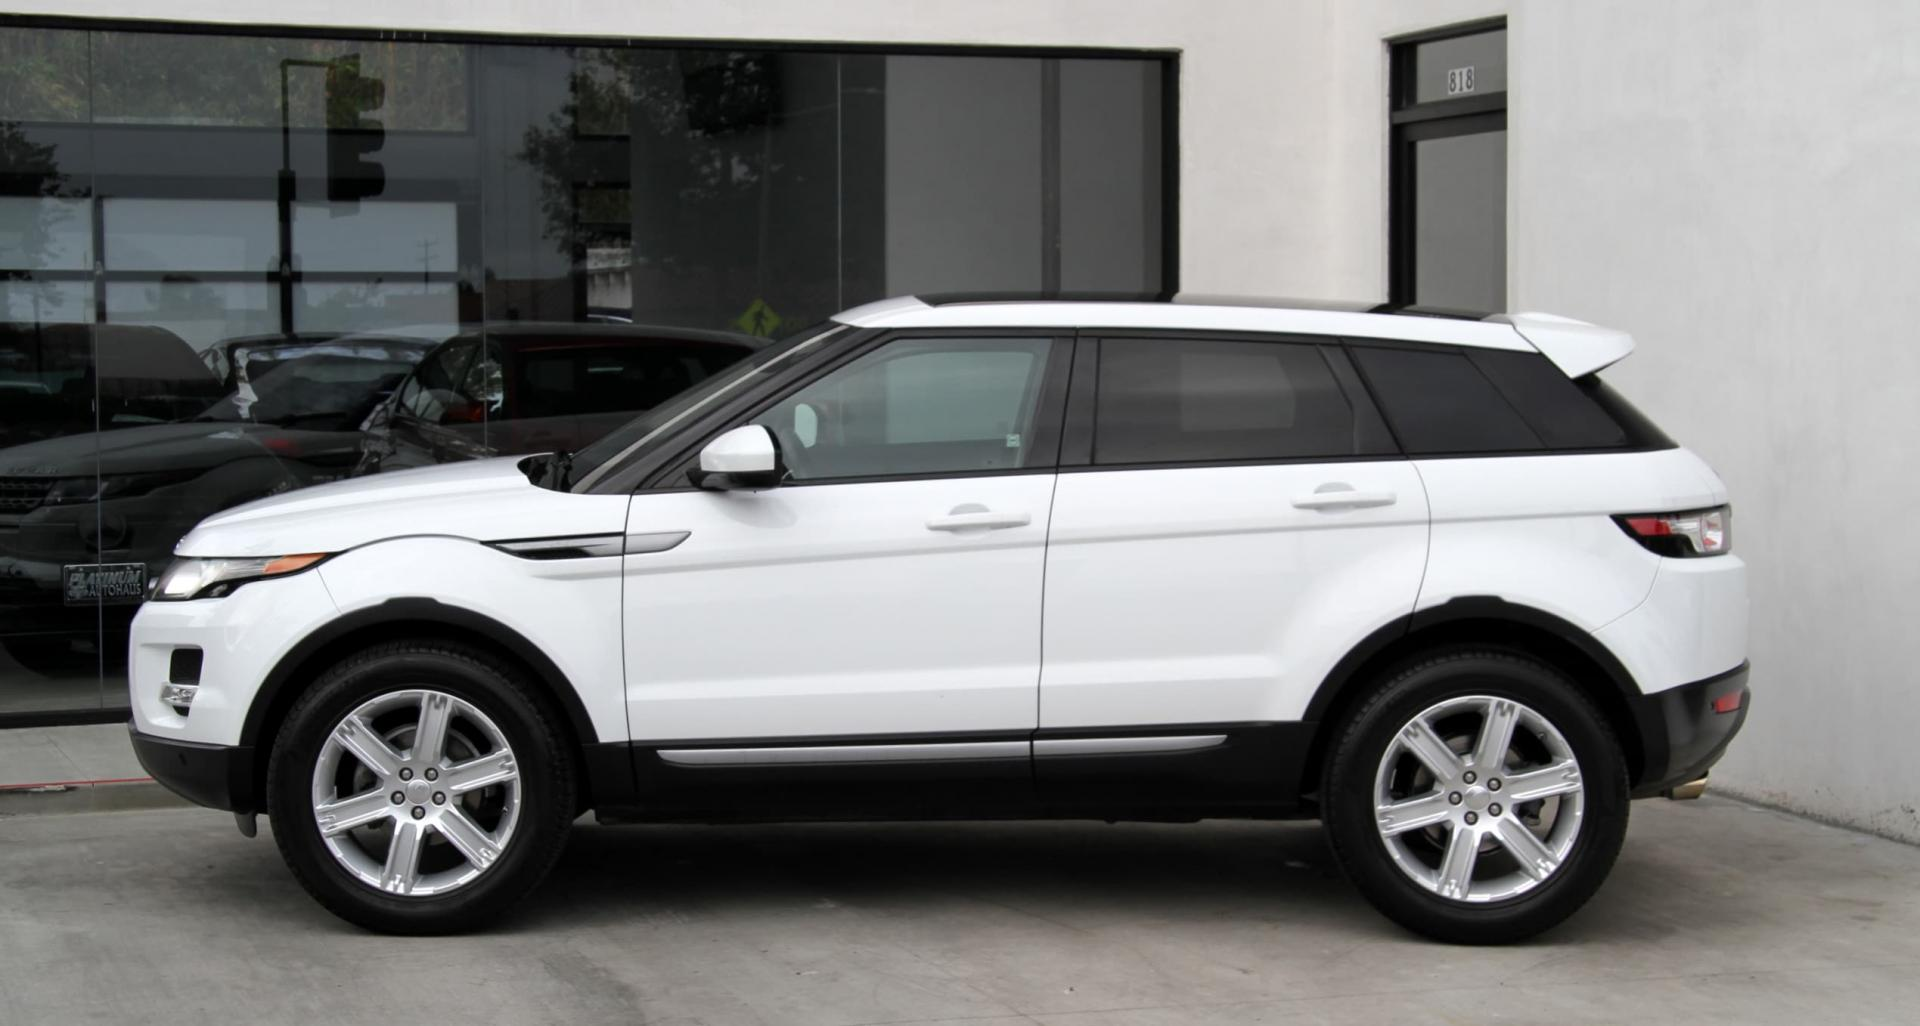 interior price pure rangeroverevoque evoque range photos all rover reviews plus land wheel landrover suv door features drive